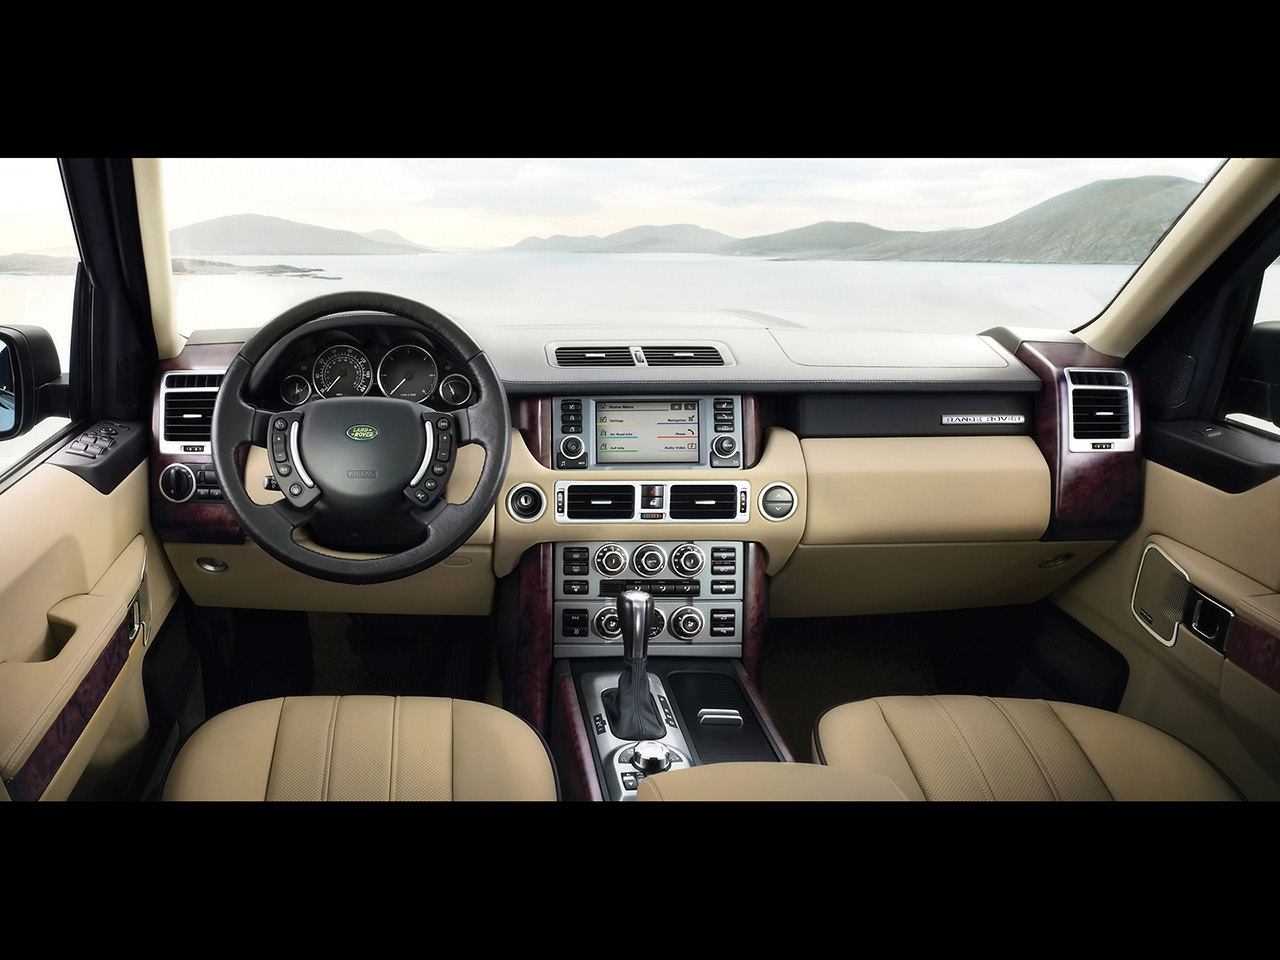 2007 Land Rover Range Rover Information And Photos